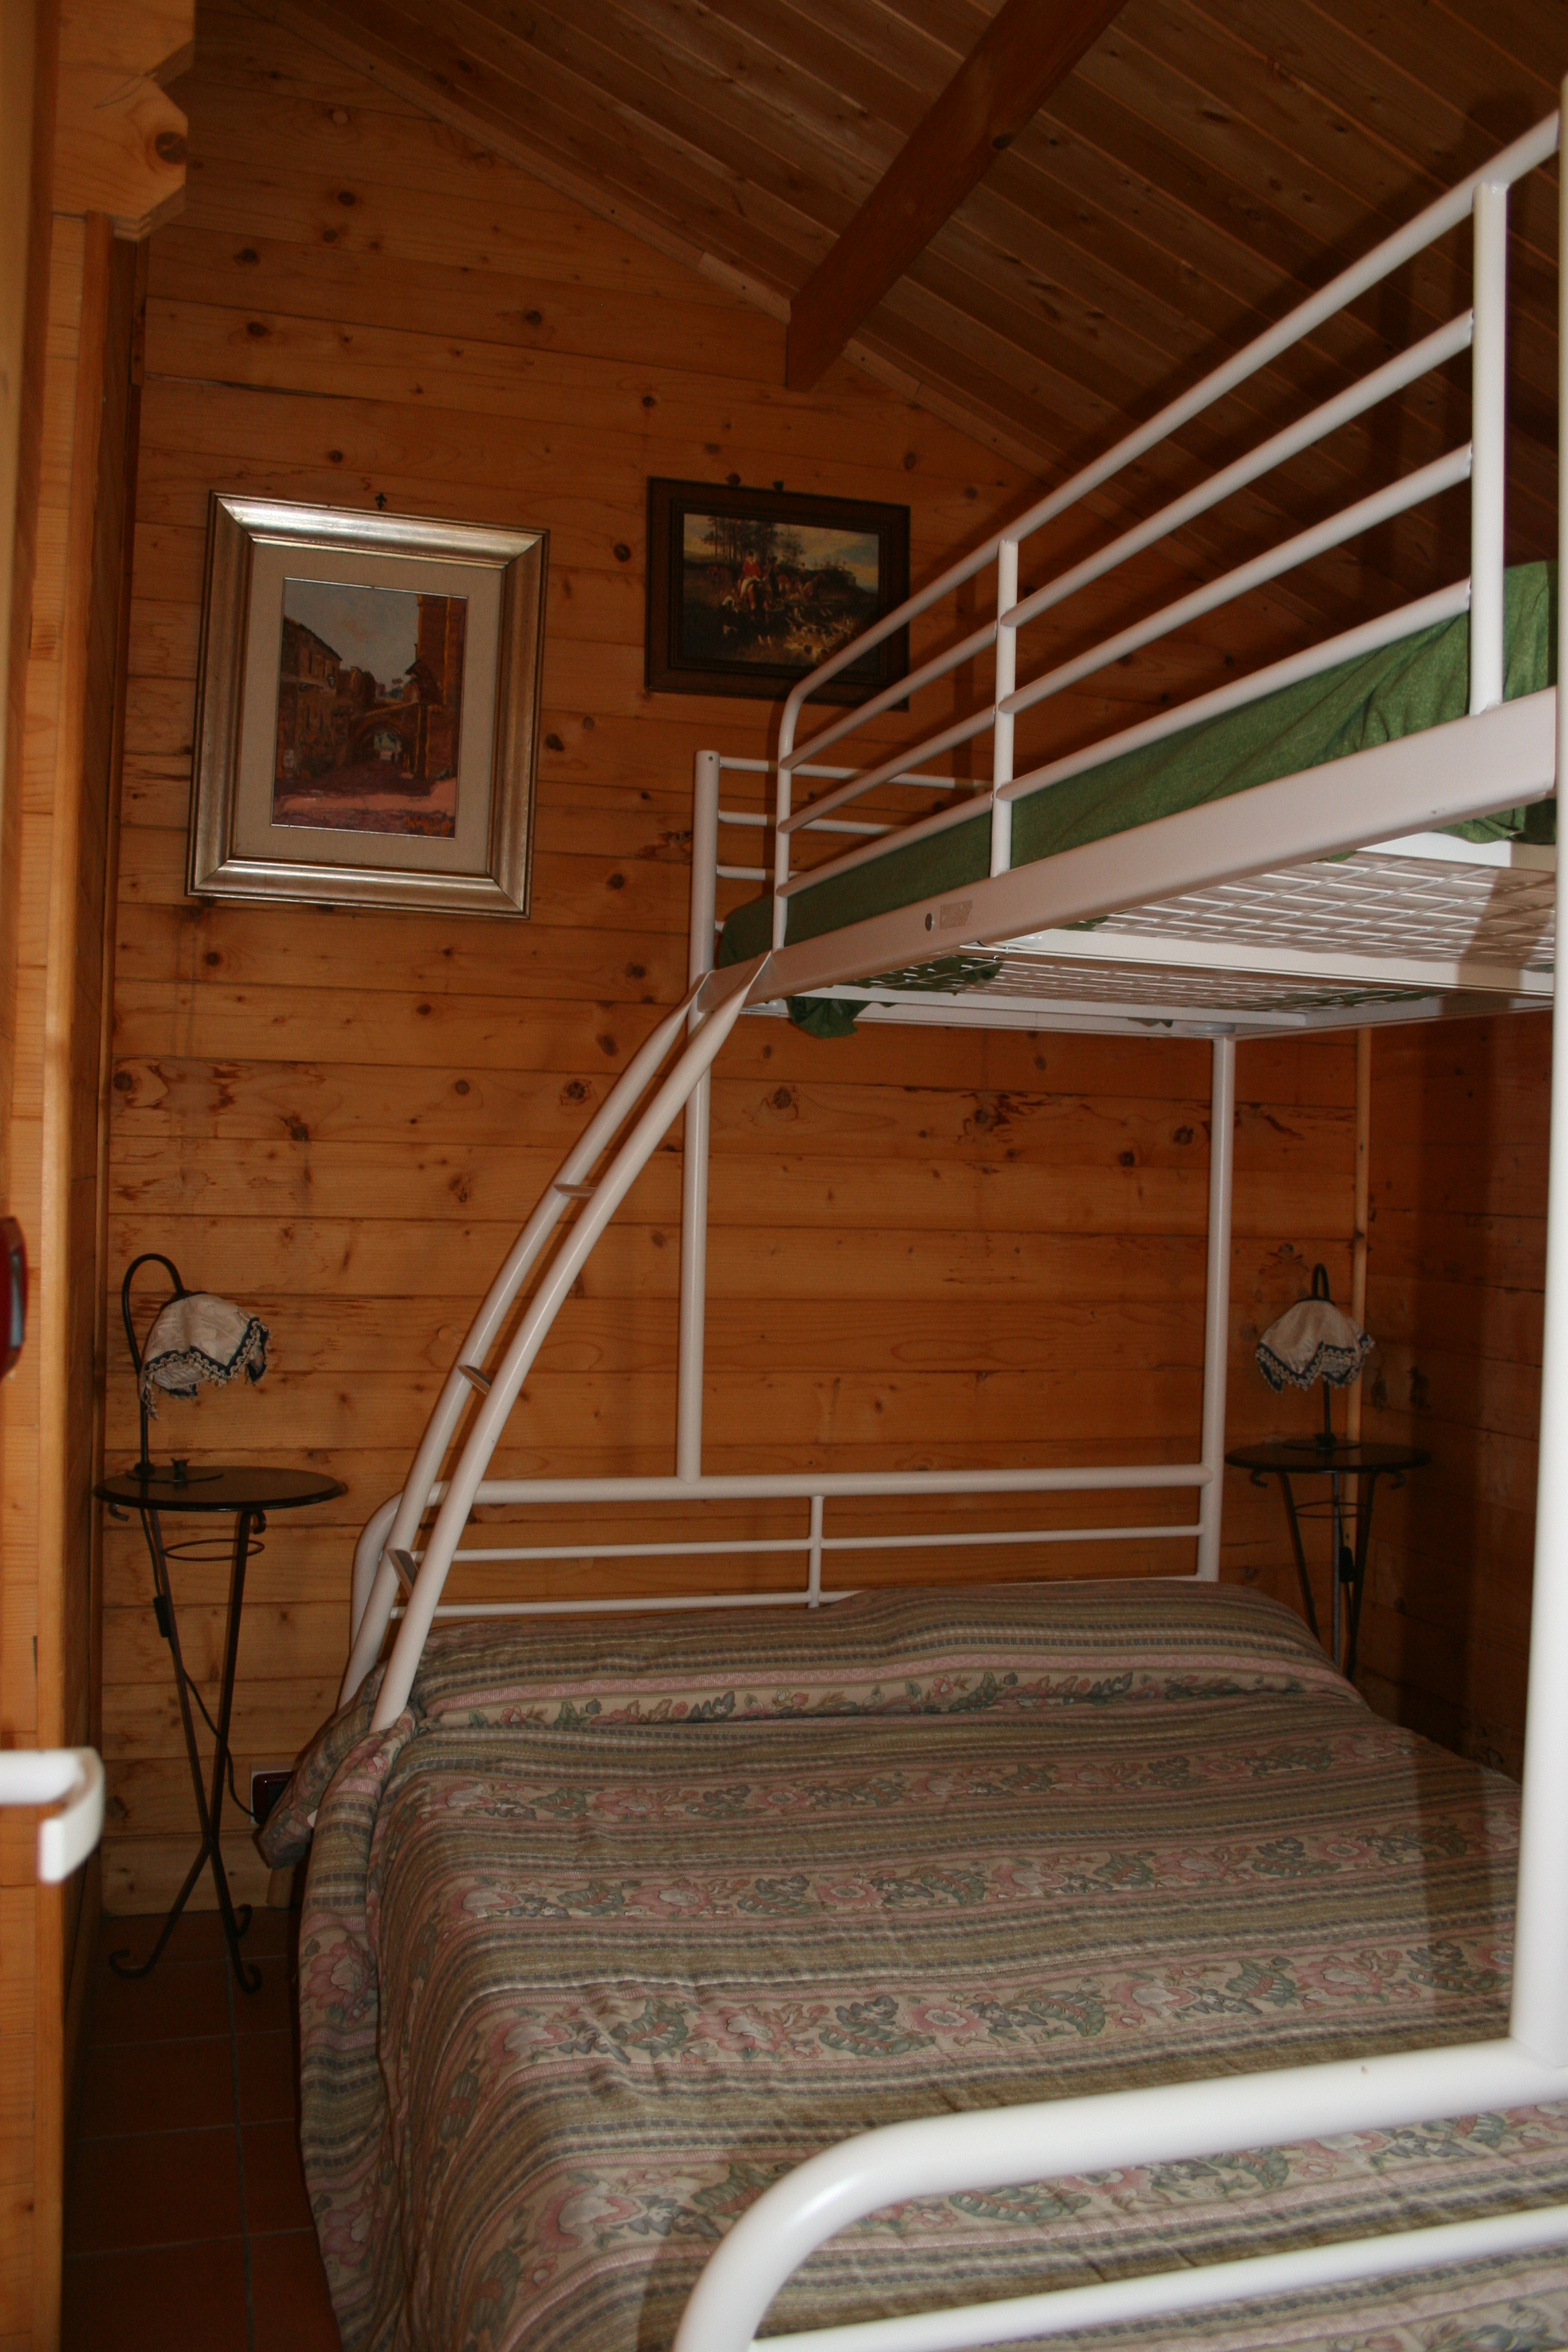 Letti chalet Gelso Bianco